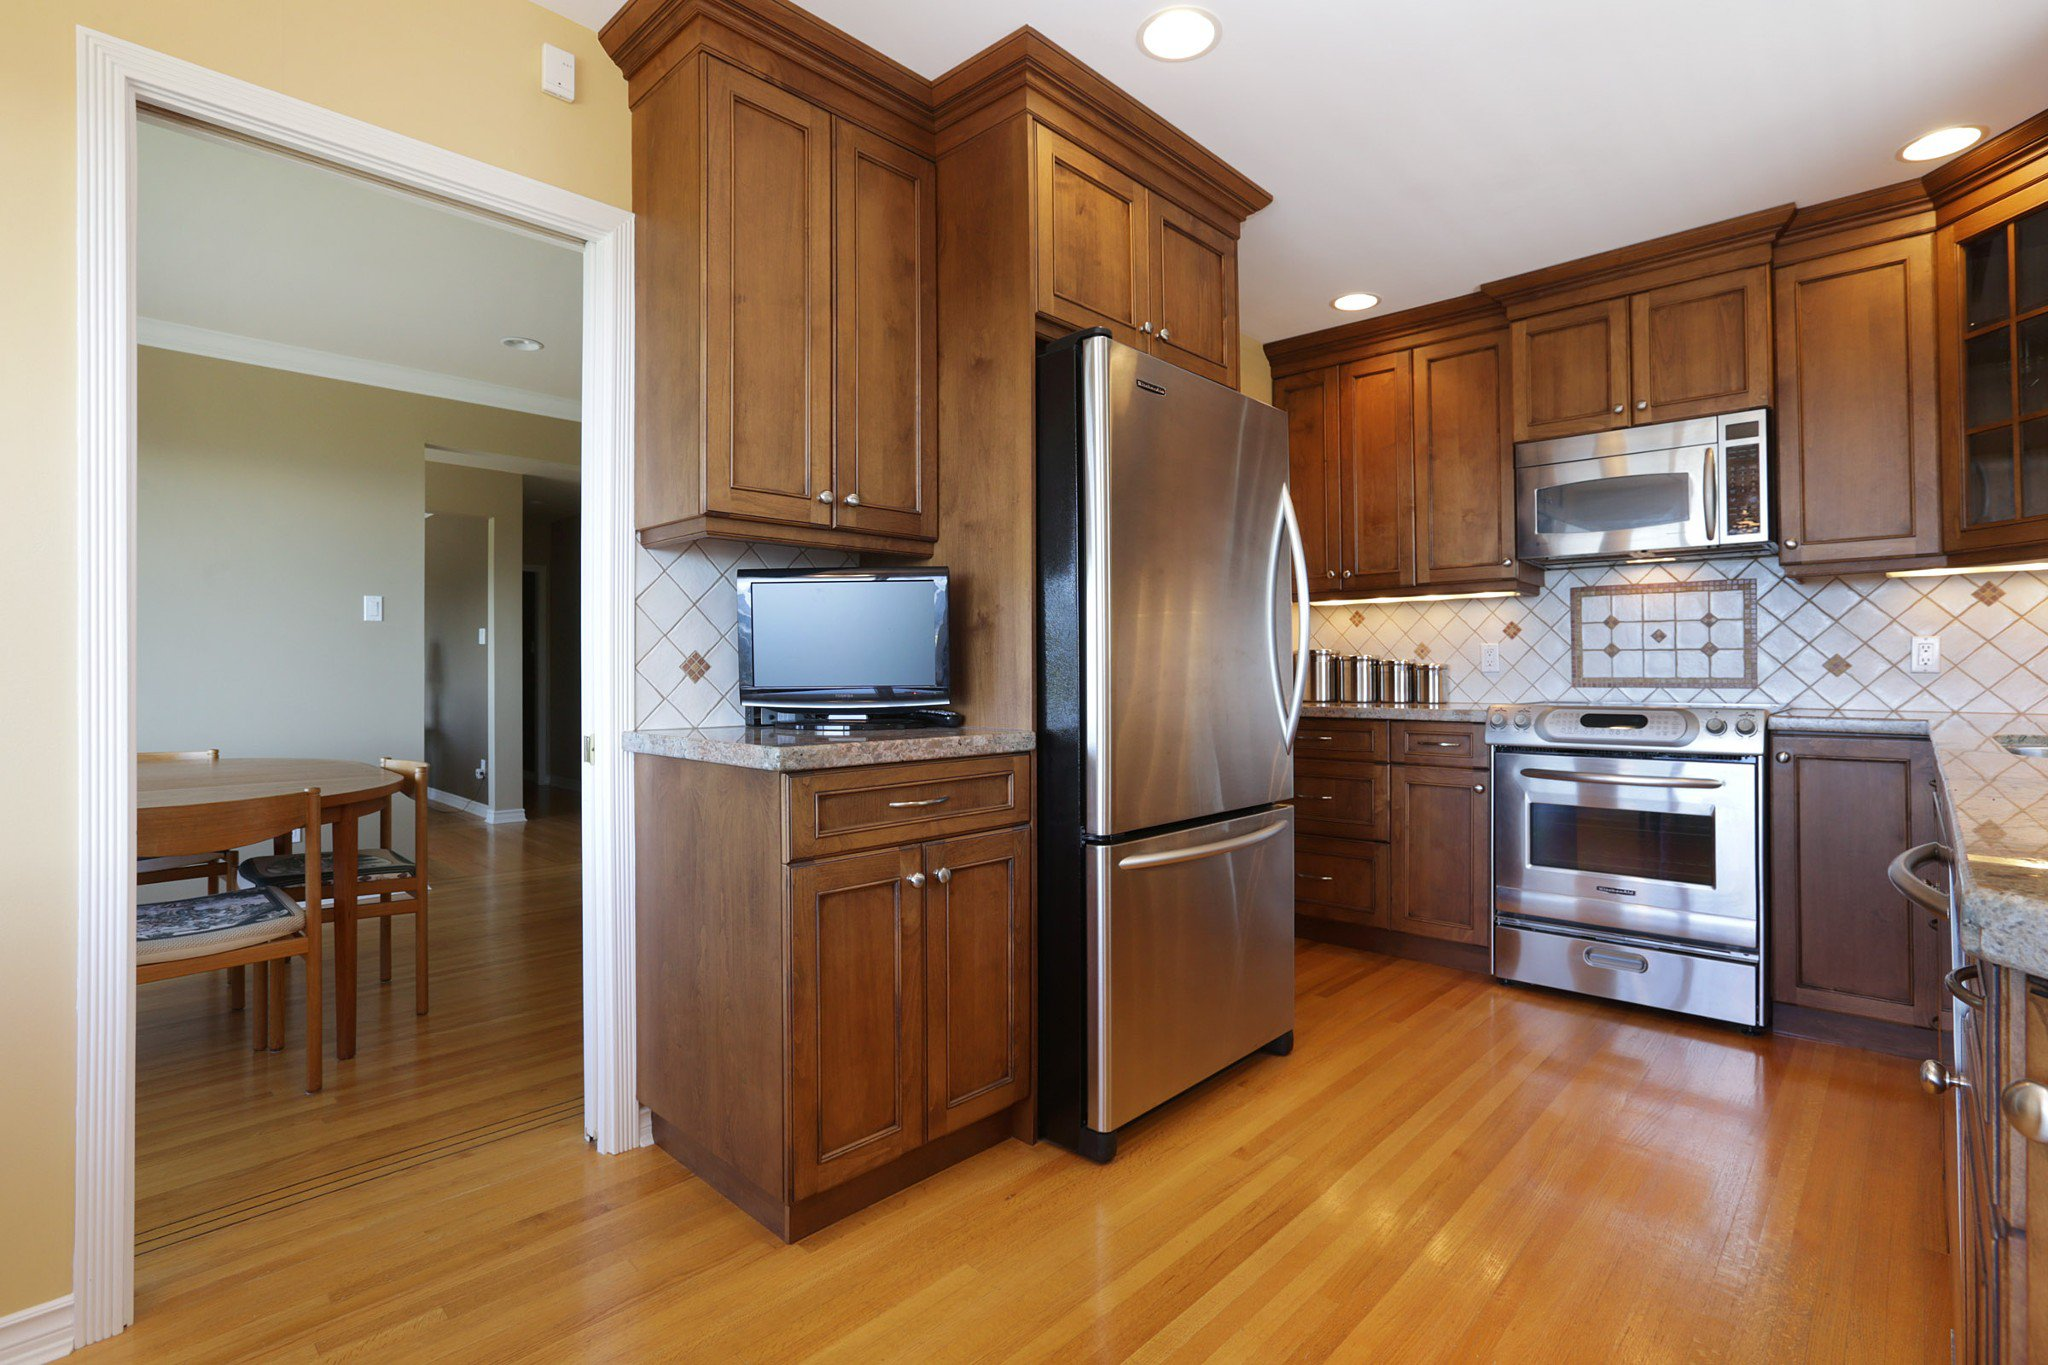 Photo 6: Photos: 372 VENTURA Crescent in North Vancouver: Upper Delbrook House for sale : MLS®# R2284717